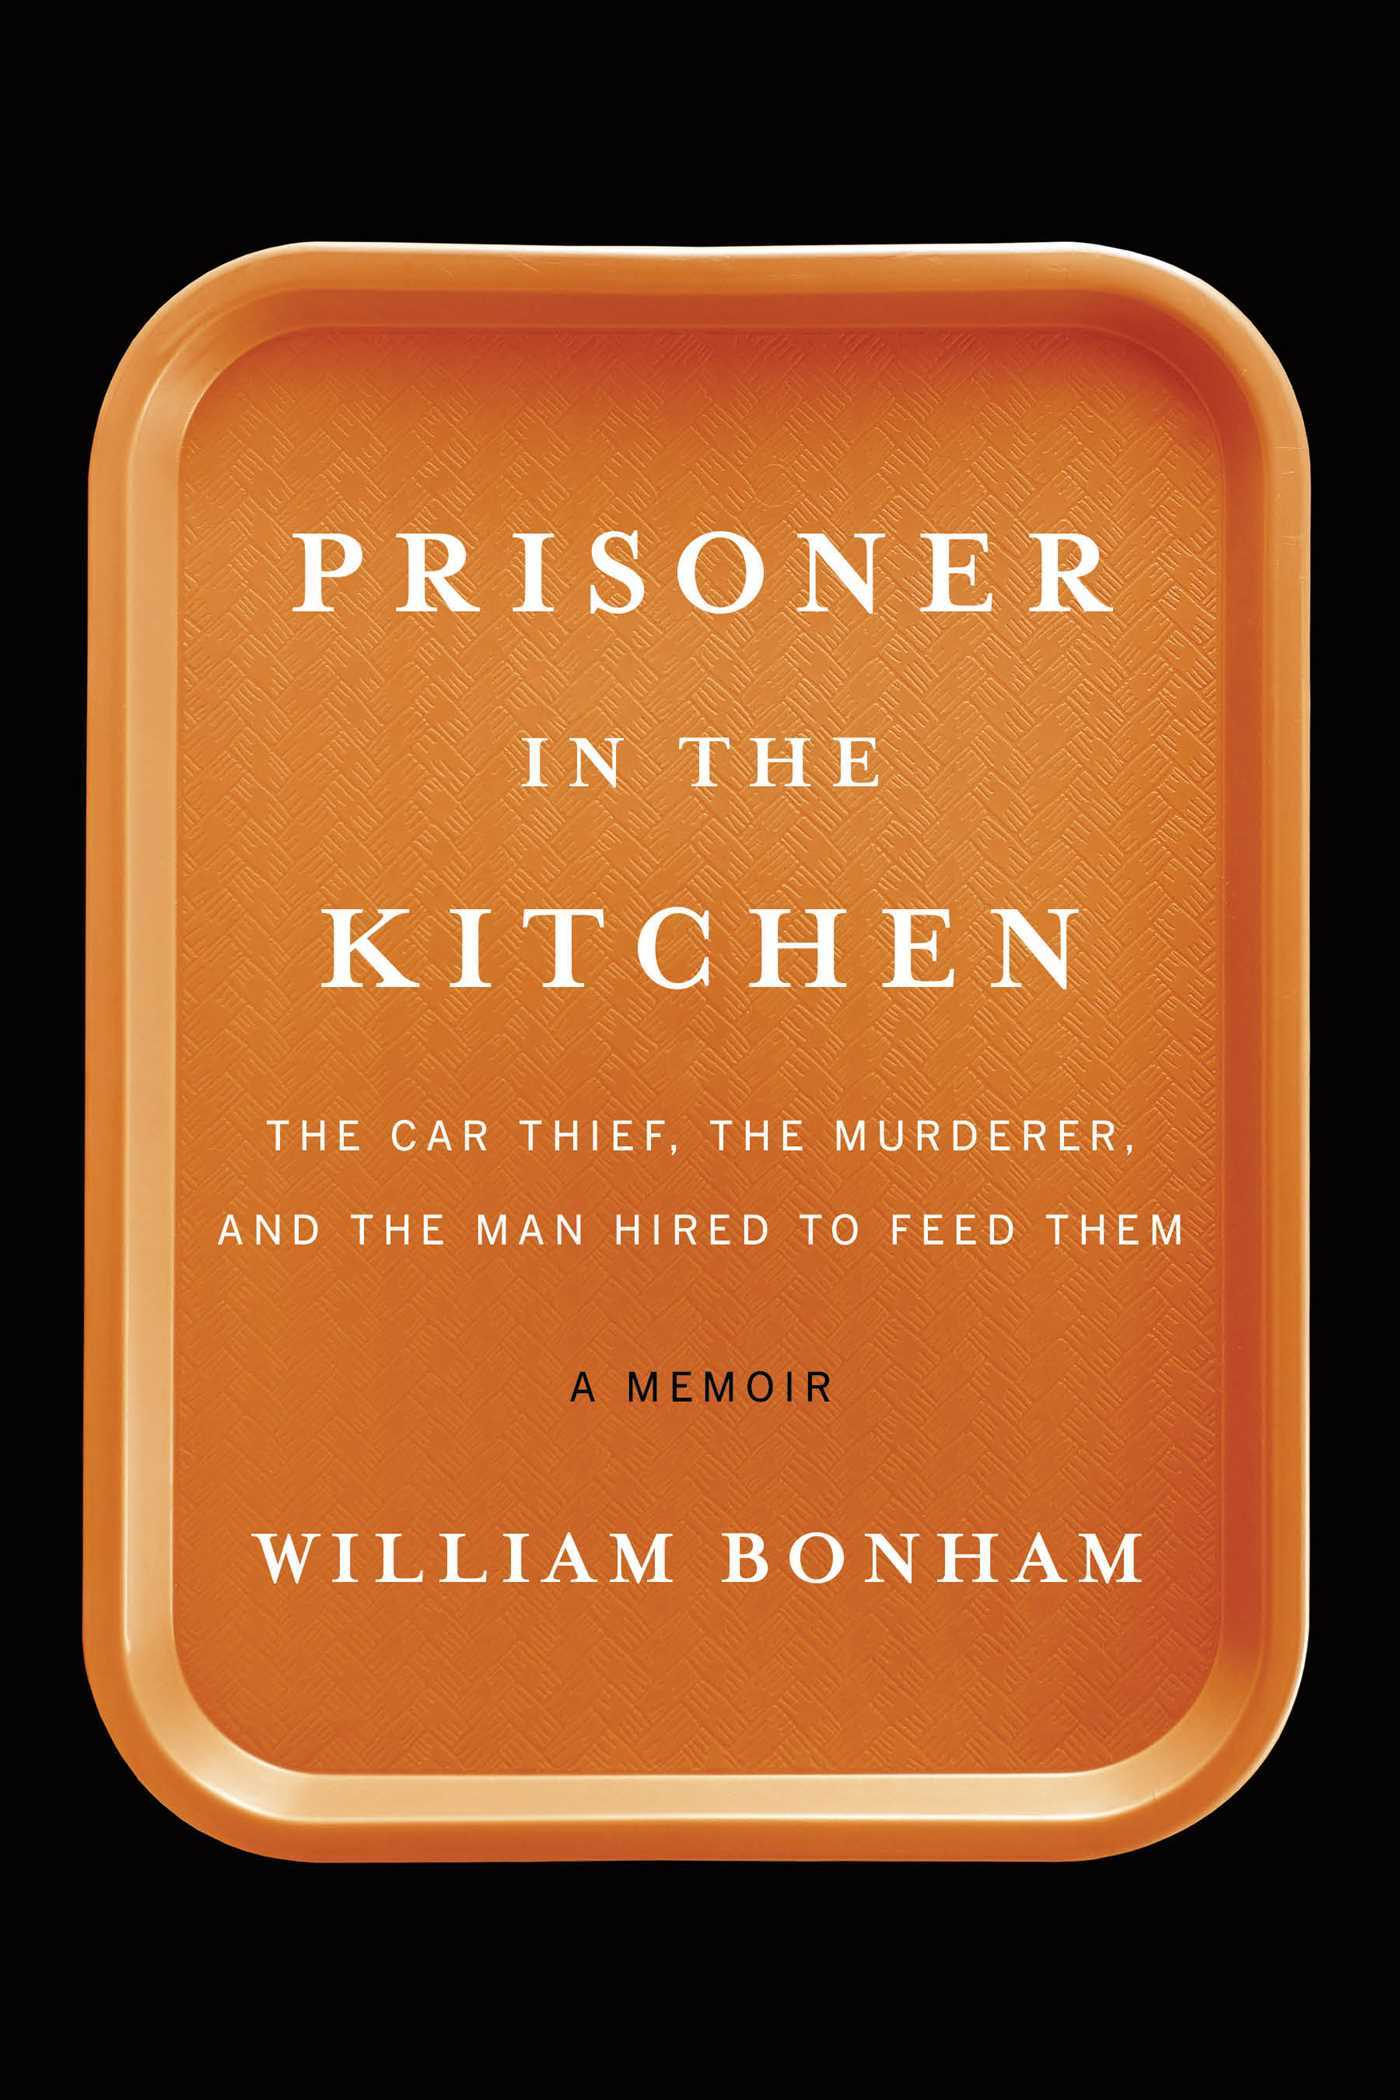 Prisoner in the Kitchen-The Car Thief, the Murderer, and the Man Hired to Feed Them